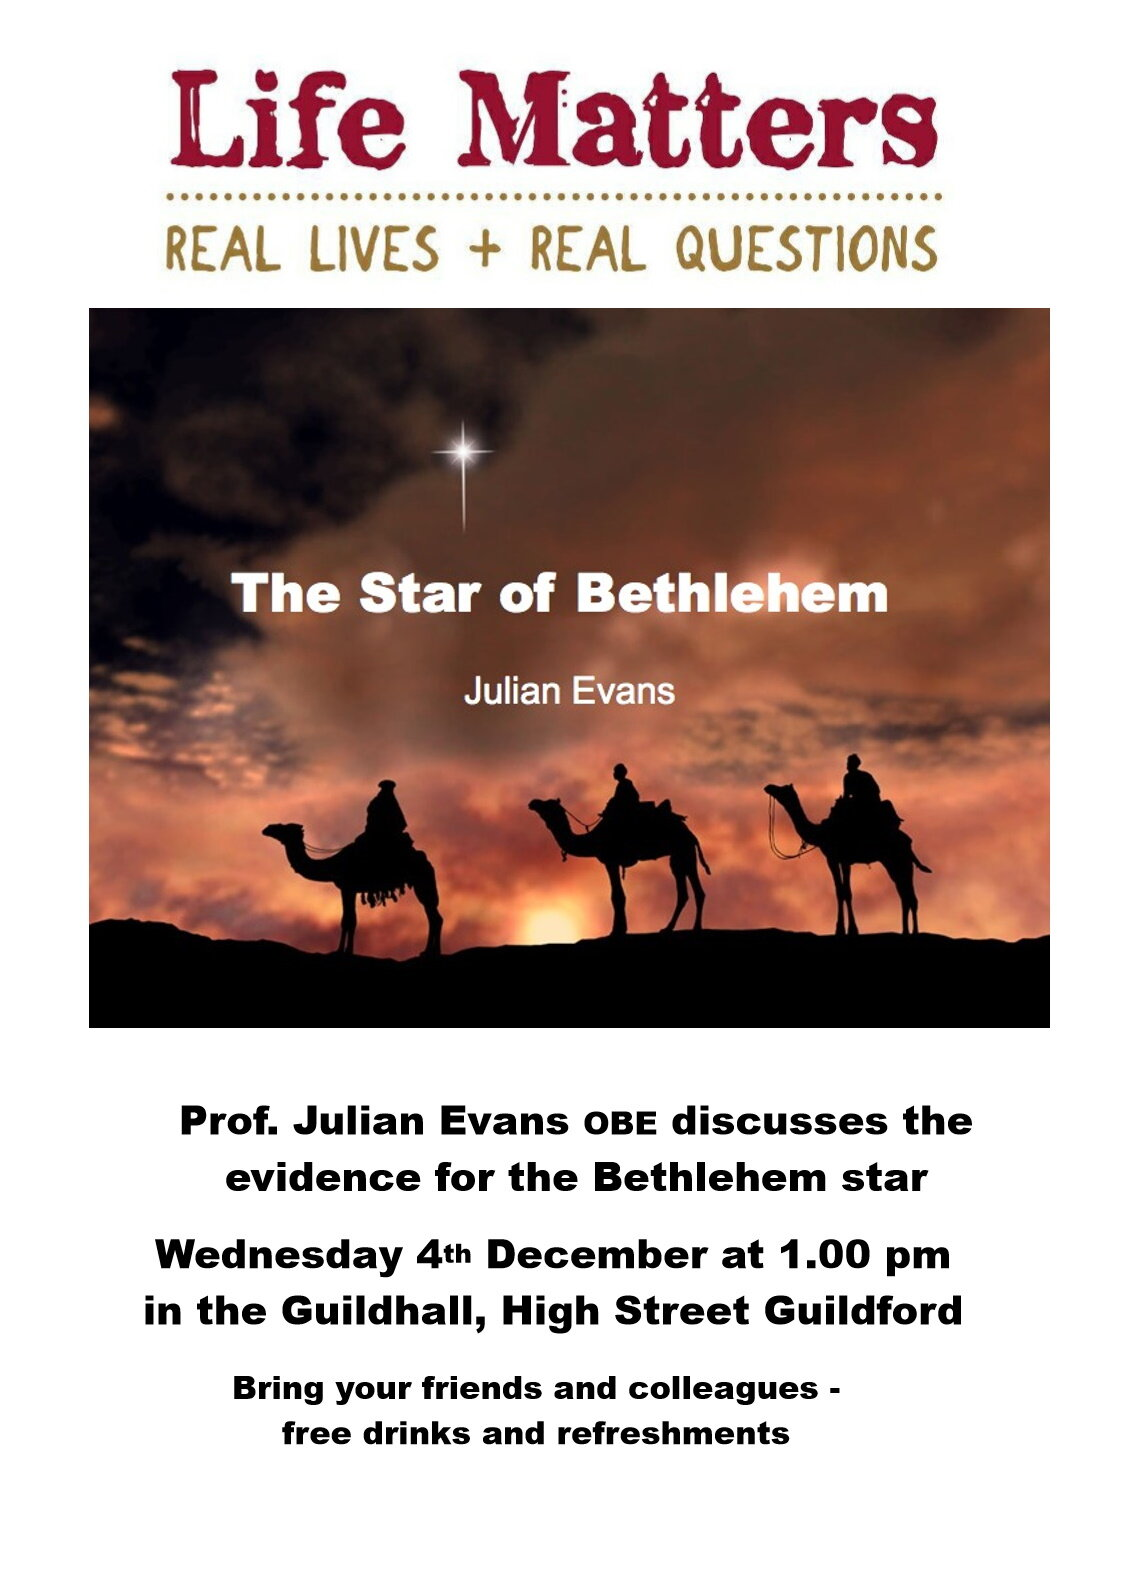 bethlehem-star-talk-1123x1587.jpg